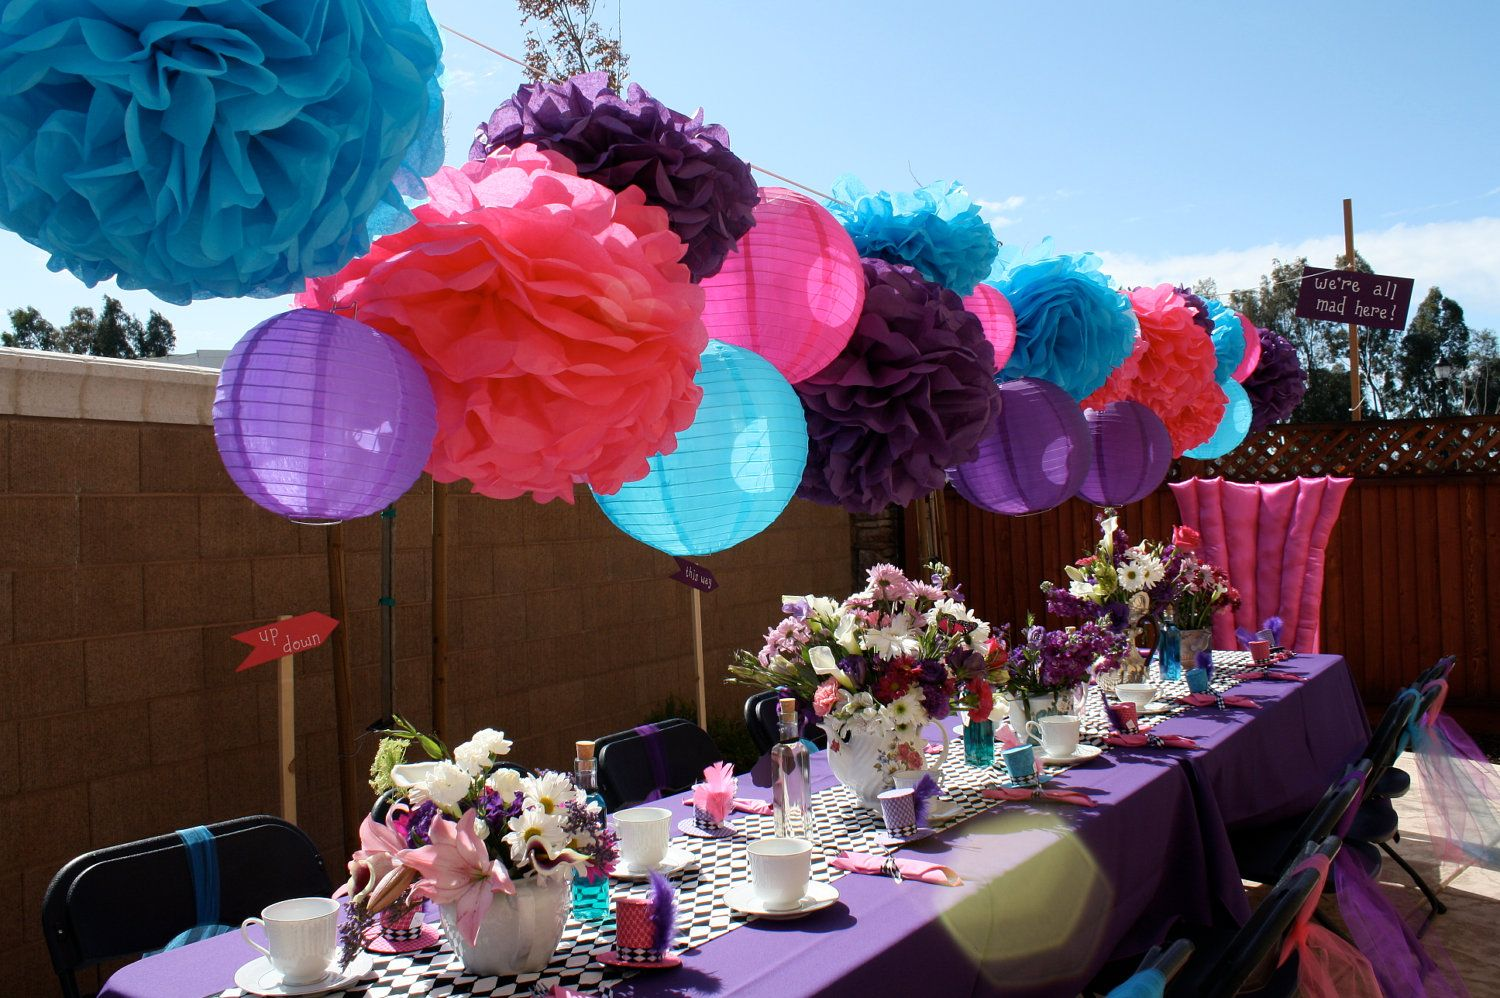 Mad hatter tea party decoration ideas - Explore mad hatters tea party mad hatter tea and more cheap party decorations ideas